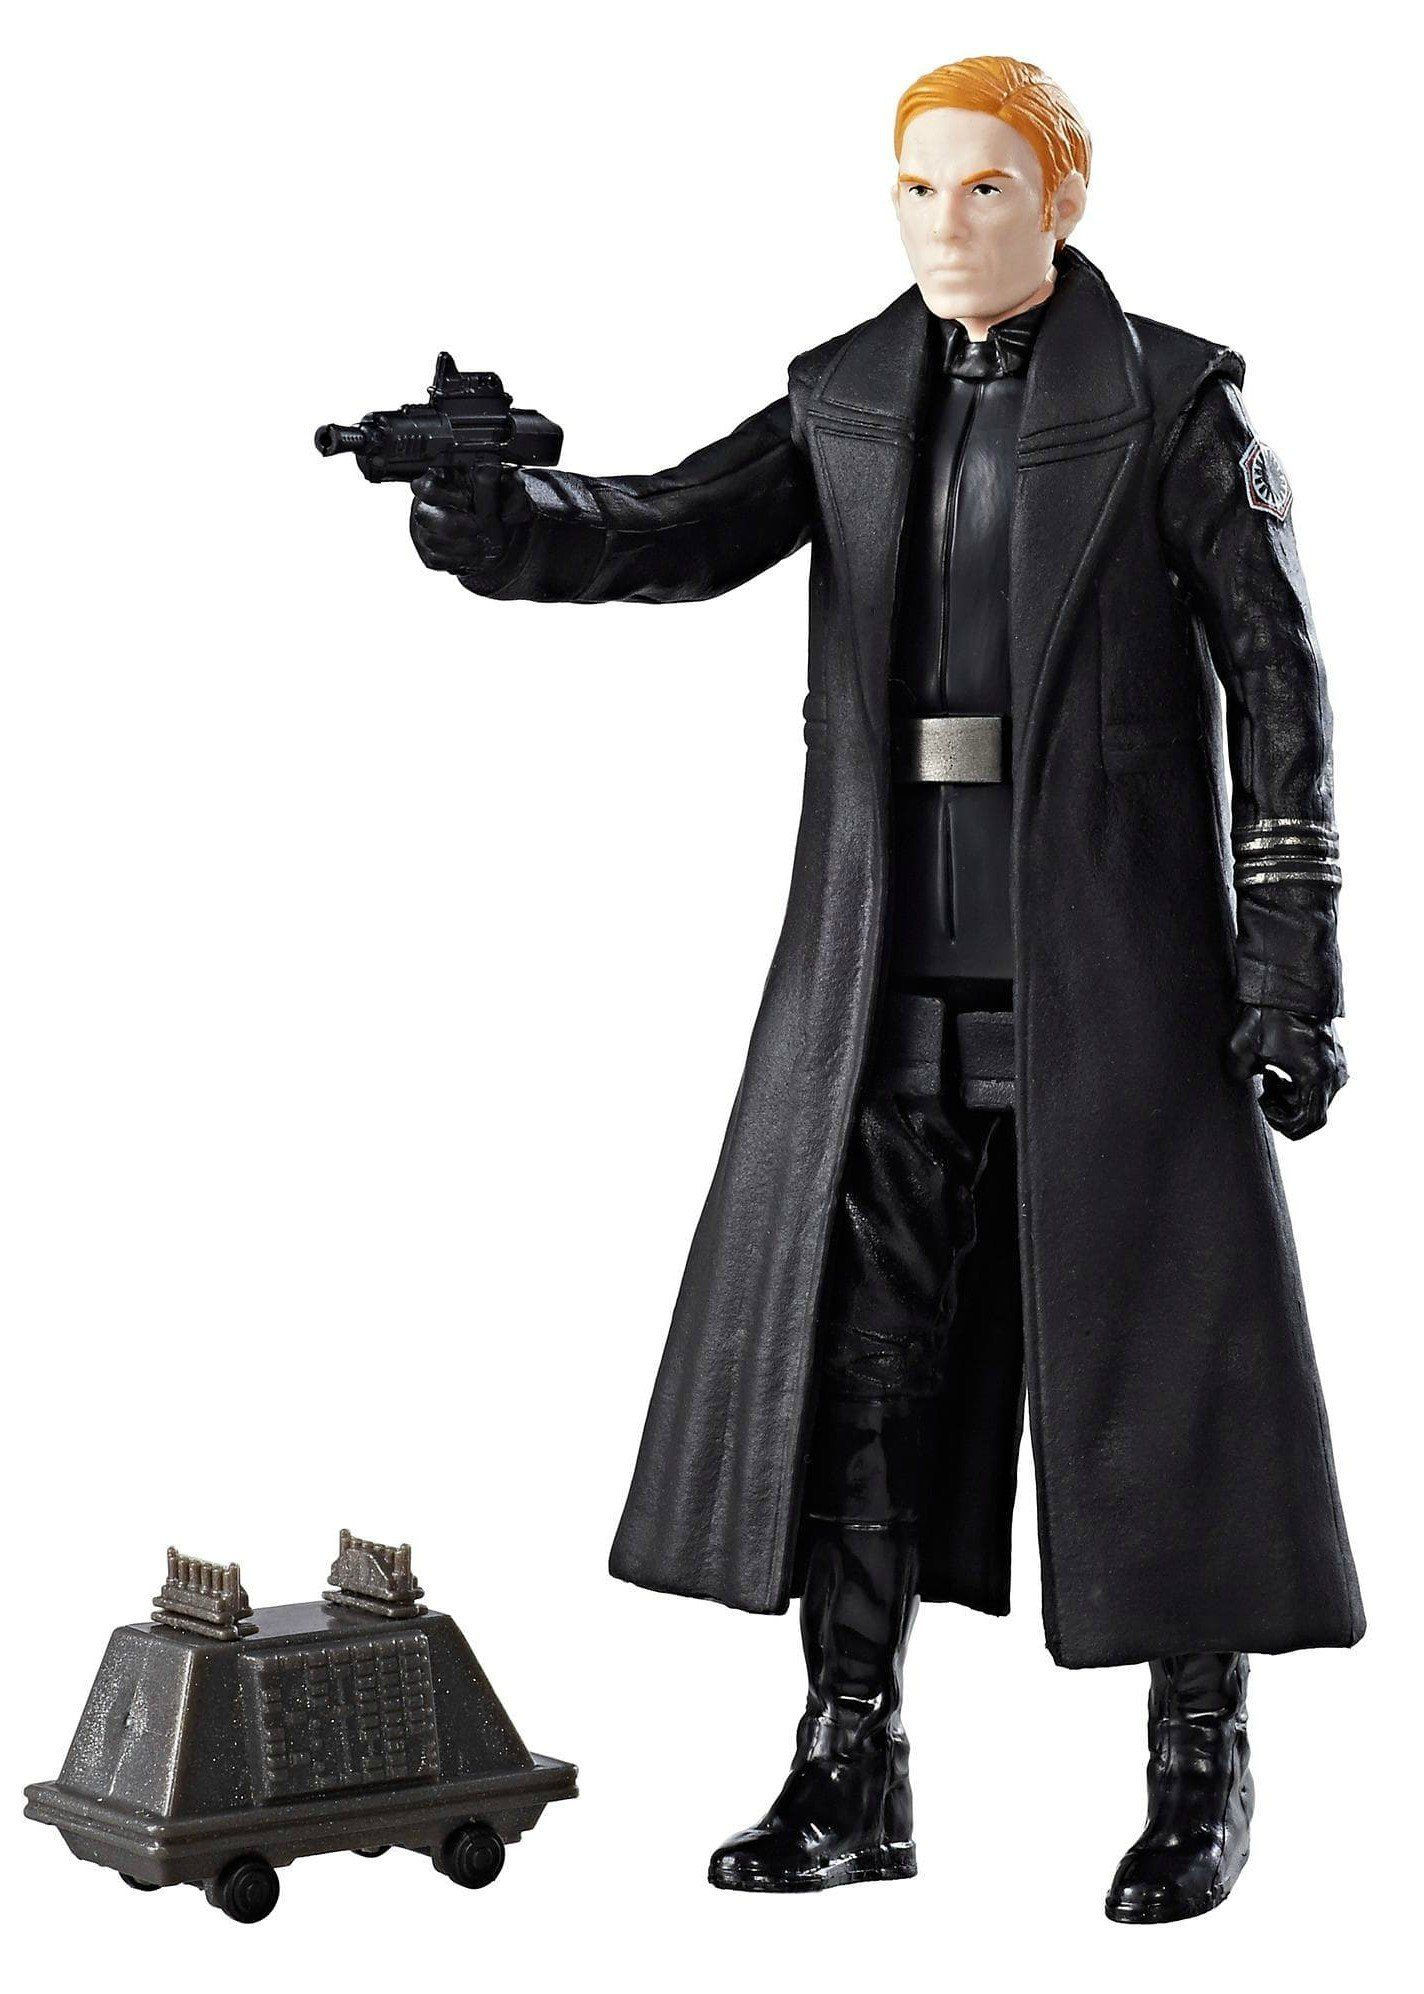 Boneco General Hux (Force Link): Star Wars The Last Jedi (Os Últimos Jedi) - Hasbro